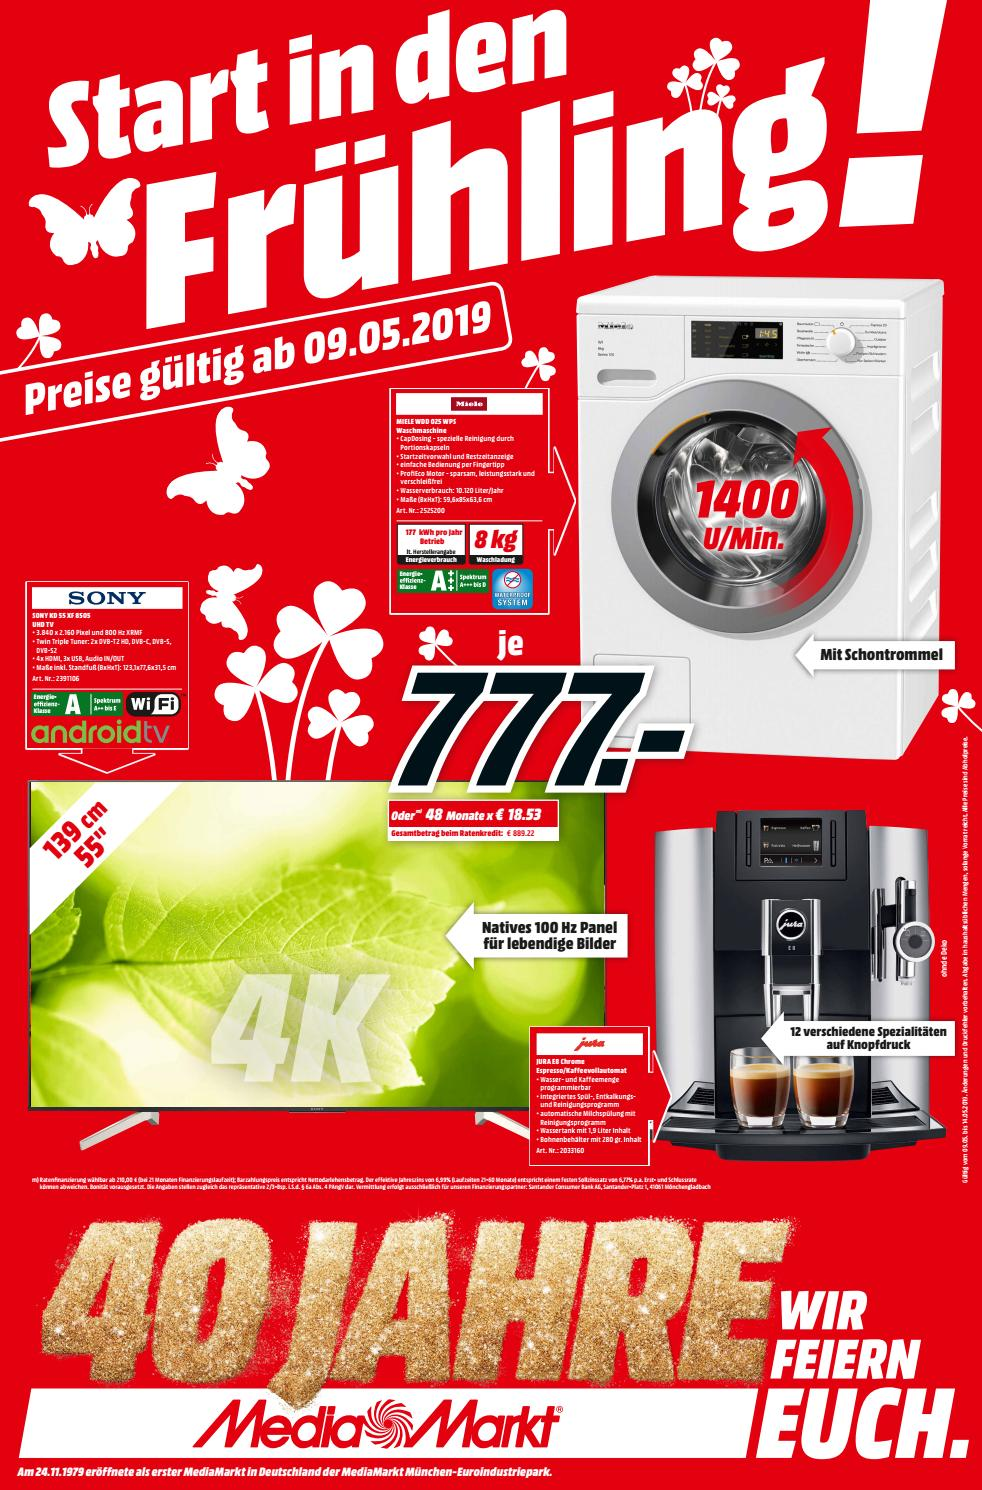 Otg Kabel Media Markt Mediamarkt Berlin Brandenburg Ab 09 05 2019 By Märkische